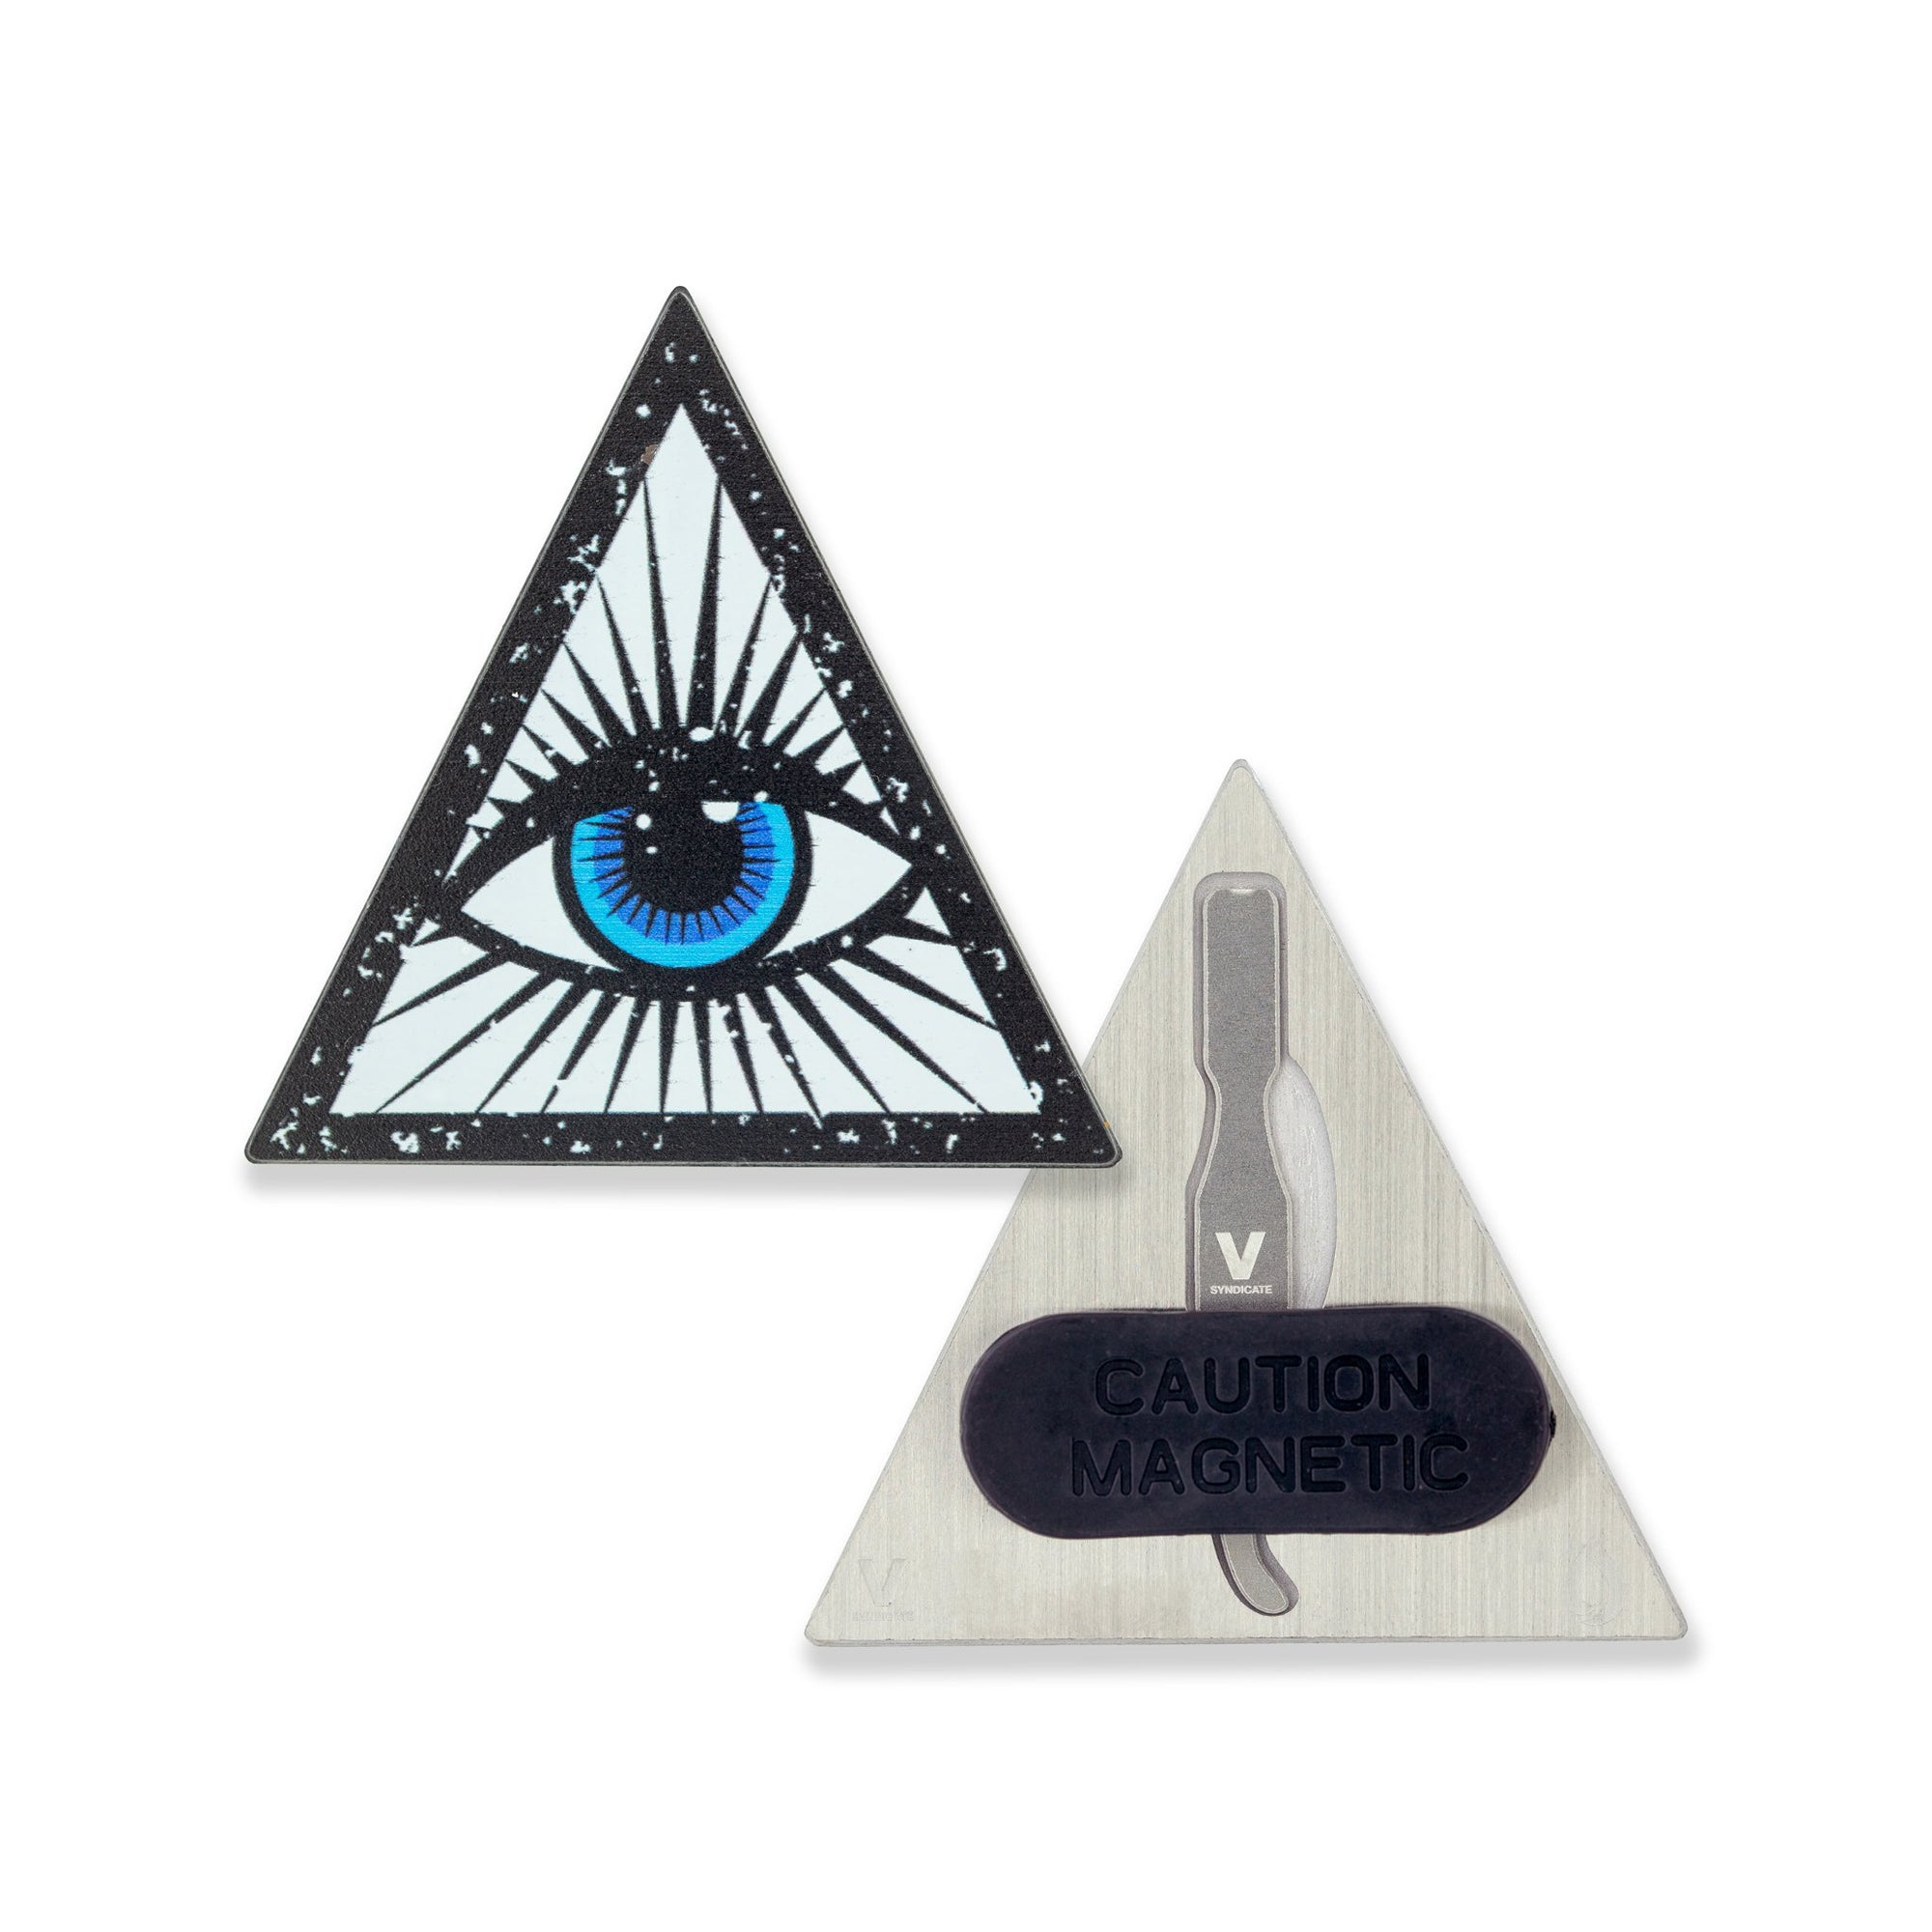 2 inch V Syndicate Wisdom Eye Dabit Hat Pin blue eye inside a triangle design on left back part with pin in black rubber